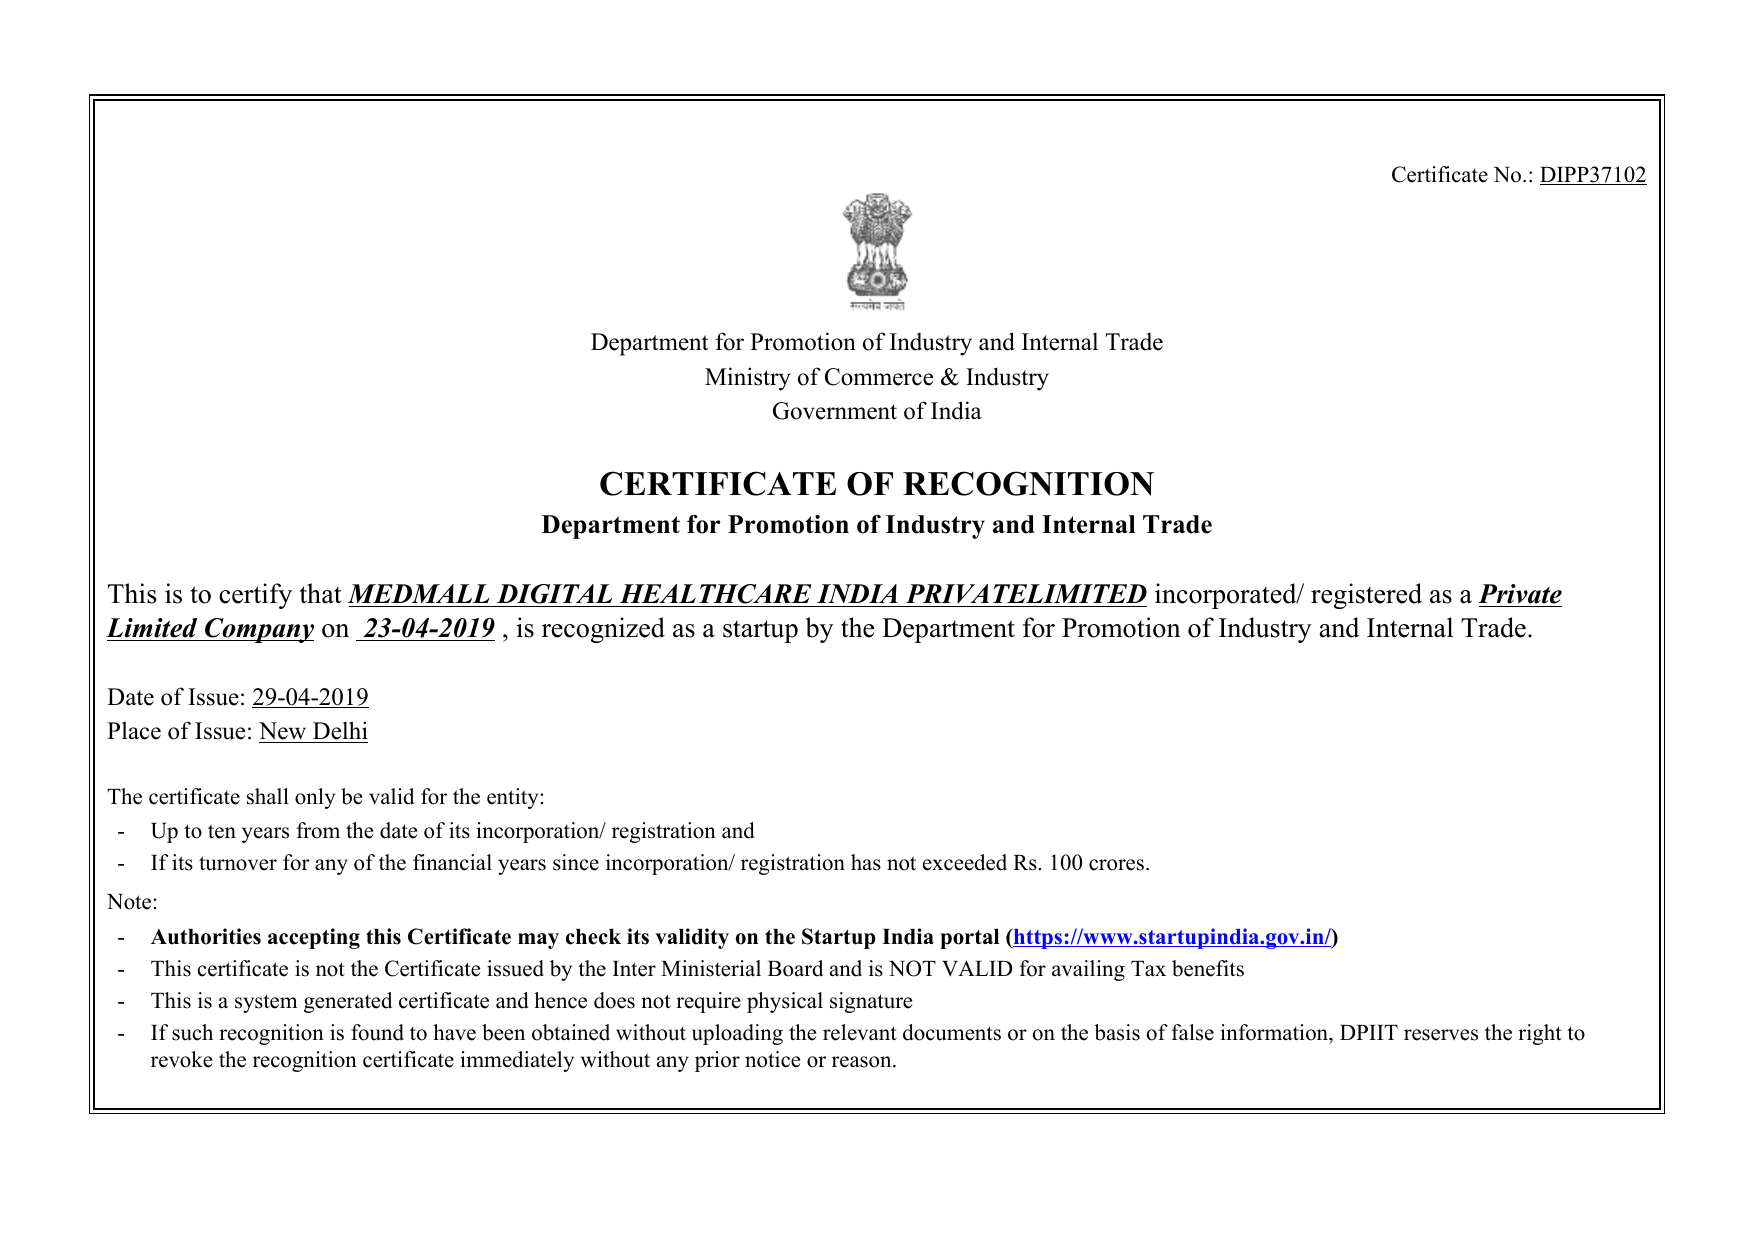 DIPP37102_MEDMALL_DIGITAL_HEALTHCARE_INDIA_PRIVATELIMITED_Recognization